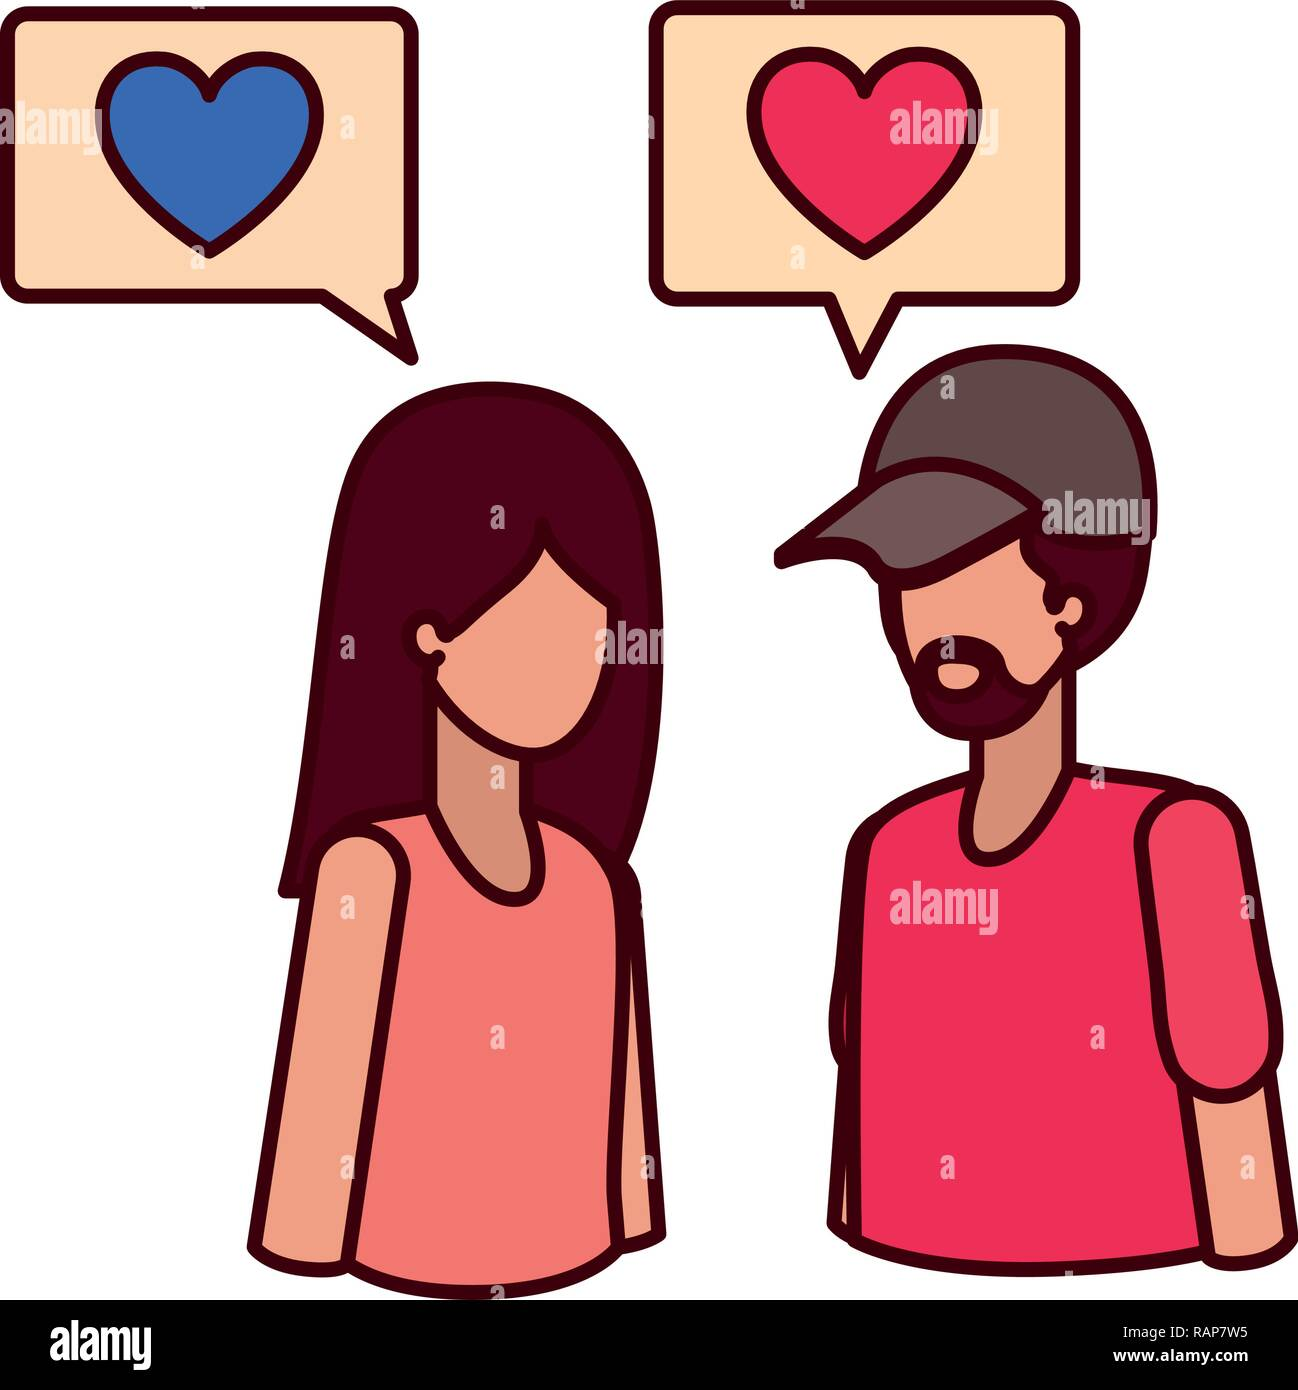 young couple with speech bubble avatar character - Stock Image